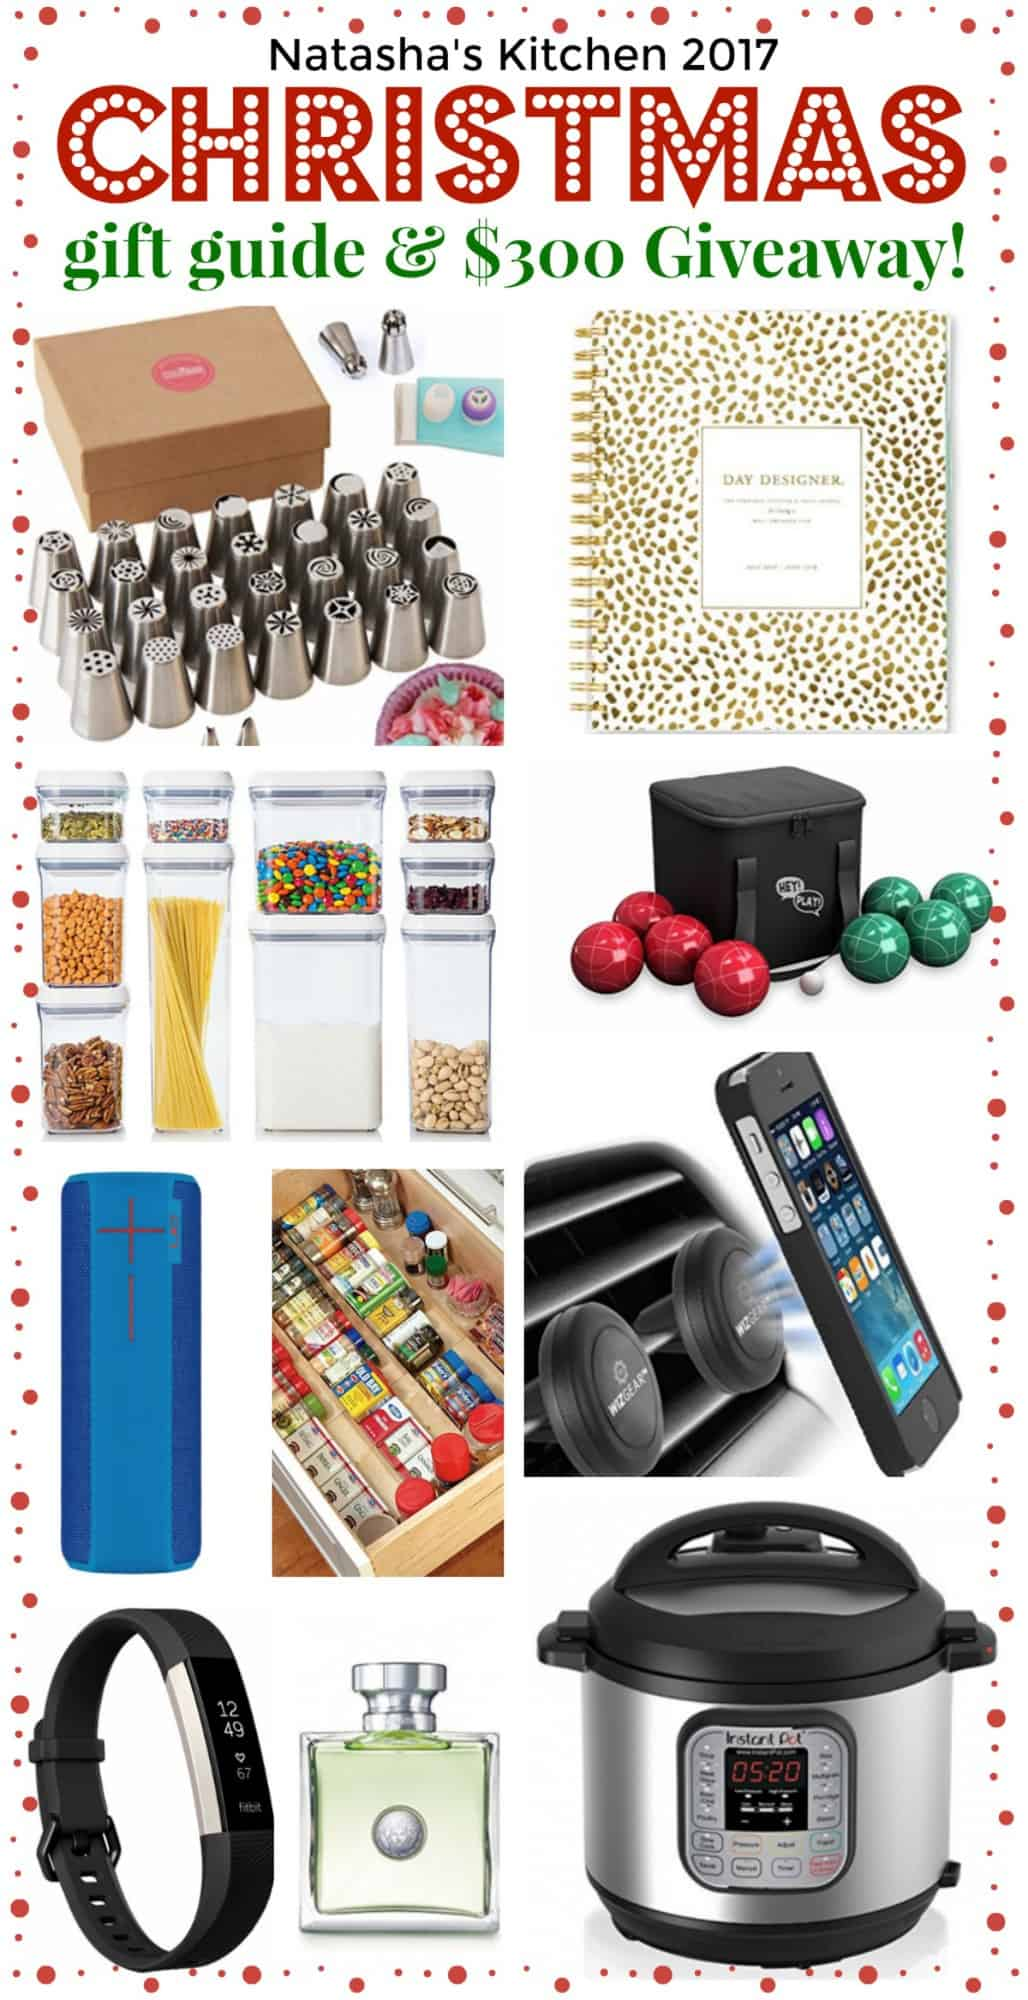 2017 holiday gift guide 300 giveaway for Natalia s kitchen